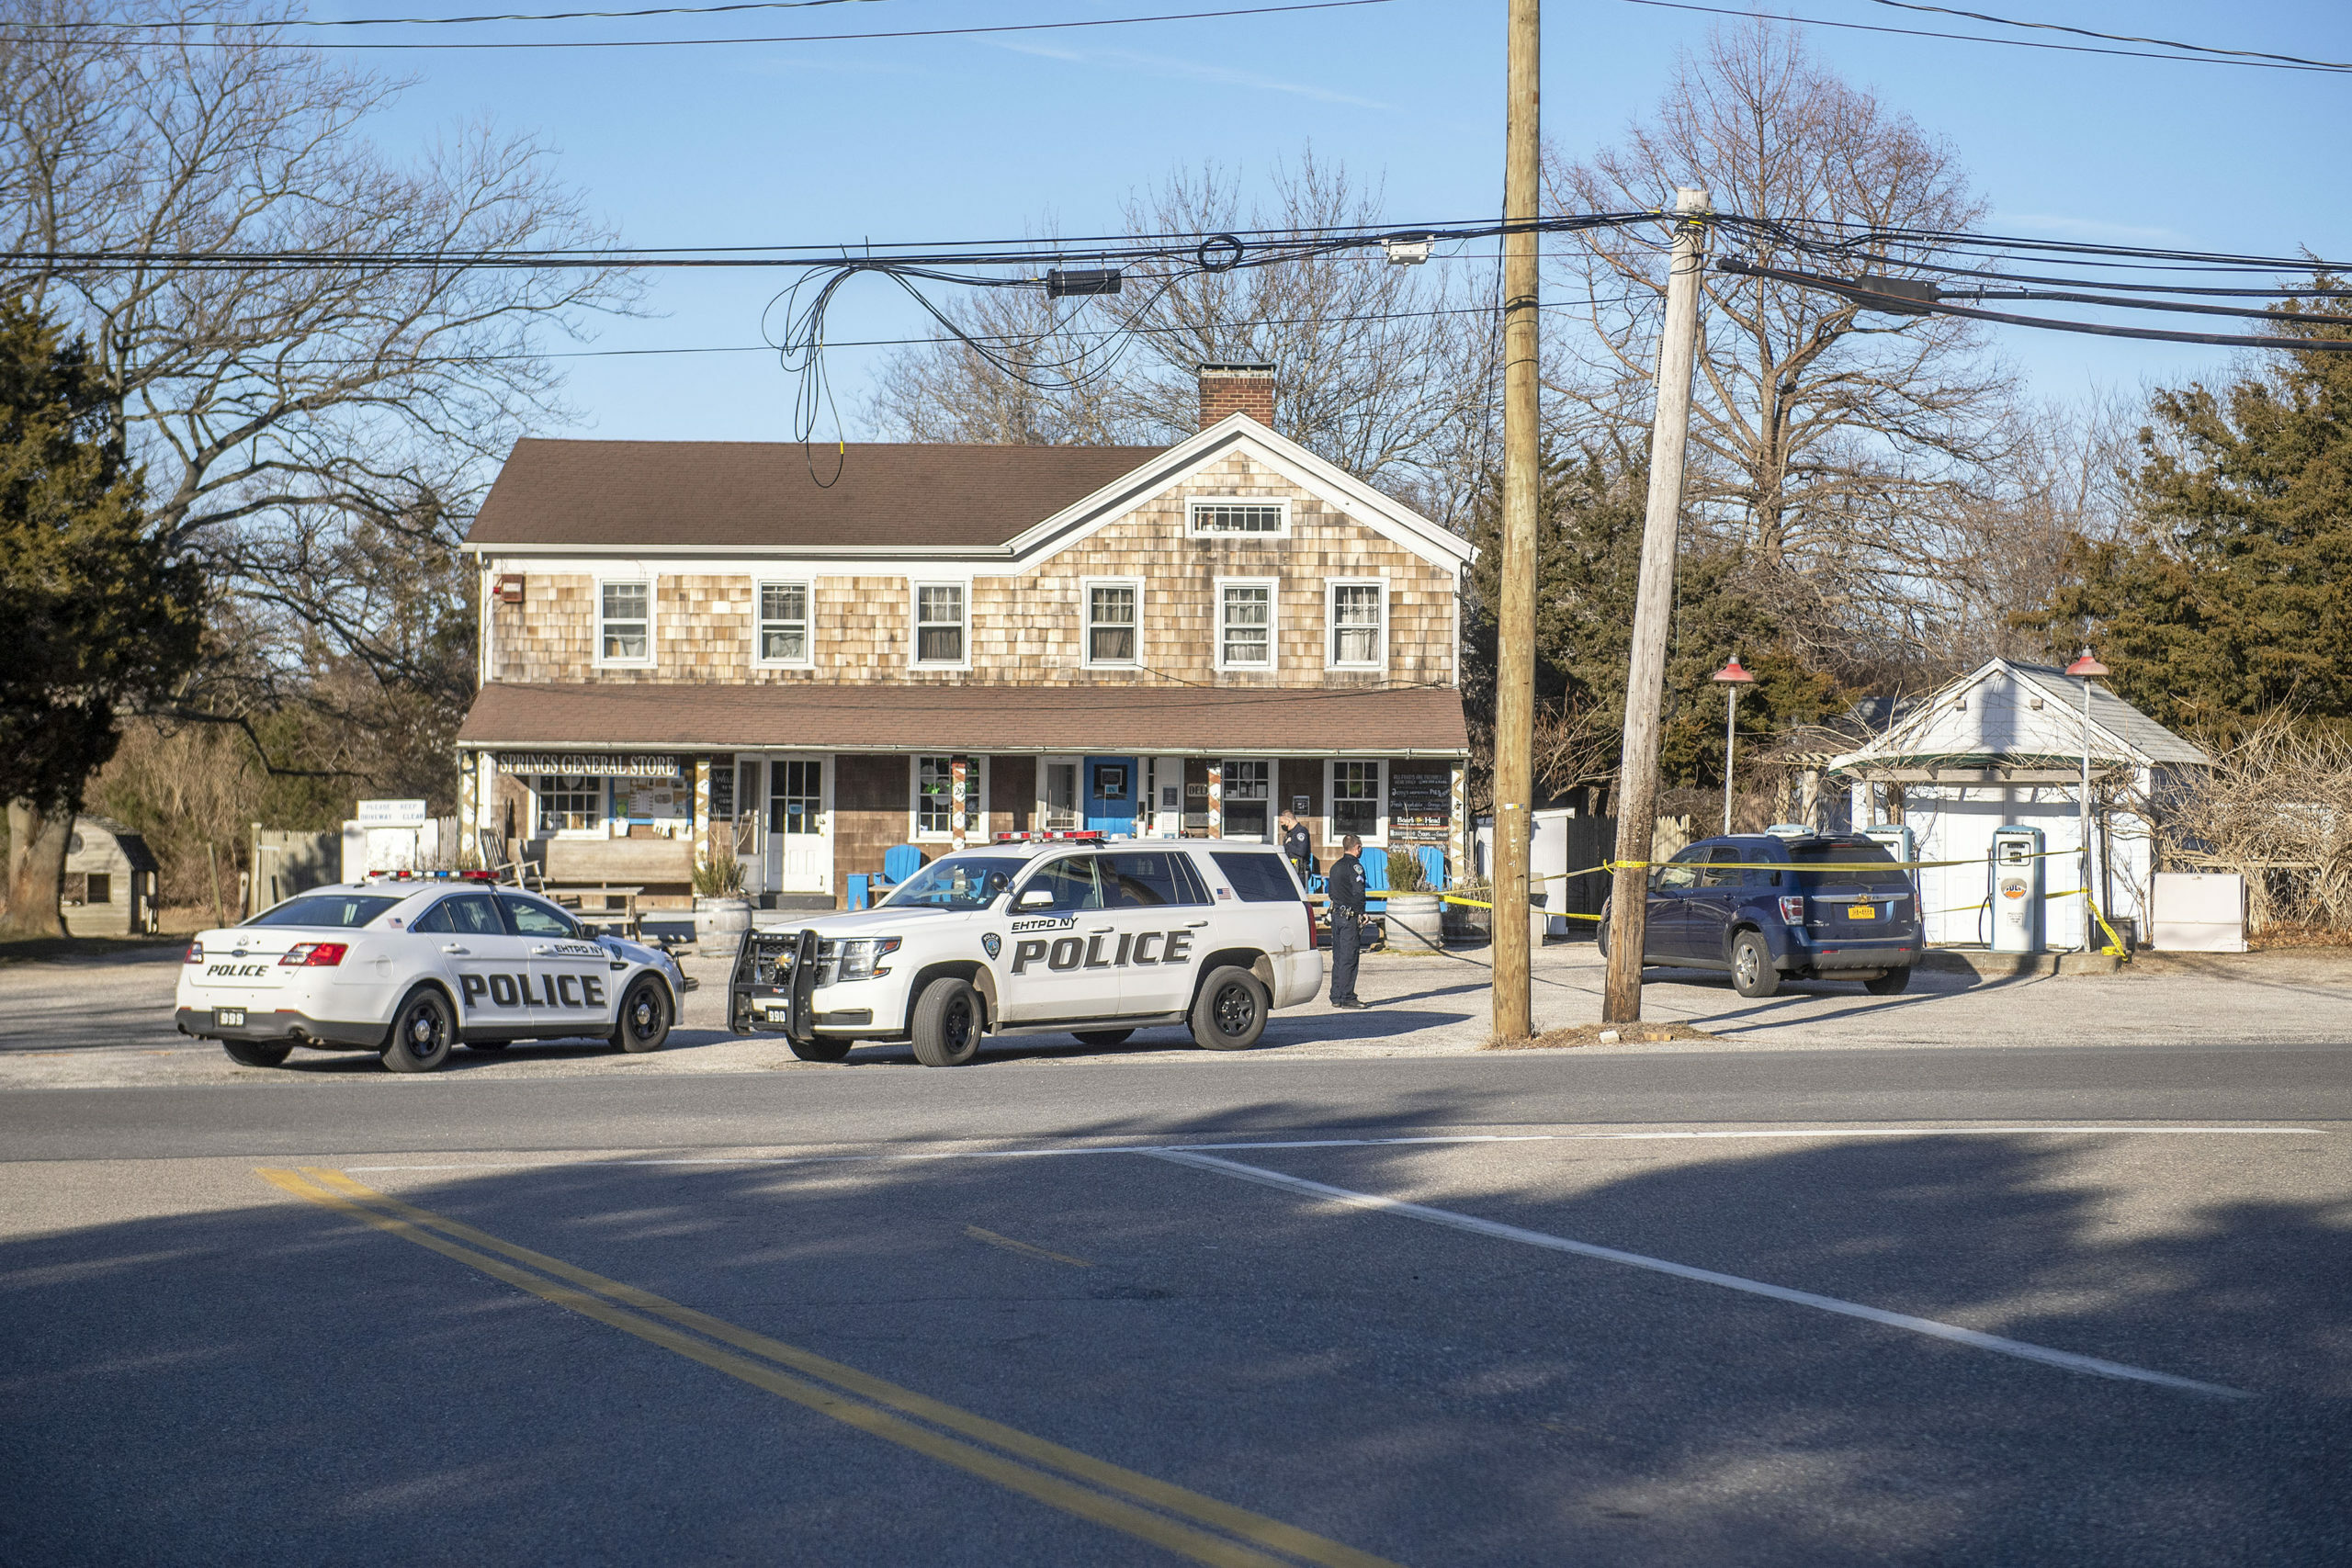 Police at the Springs General Store where the woman who was robbed on March 8 reported the crime. A 47-year-old Springs man was arrested on Monday morning and is to be charged with robbery and kidnapping in connection with the incident. His attorney says it is a case of mistaken identity.